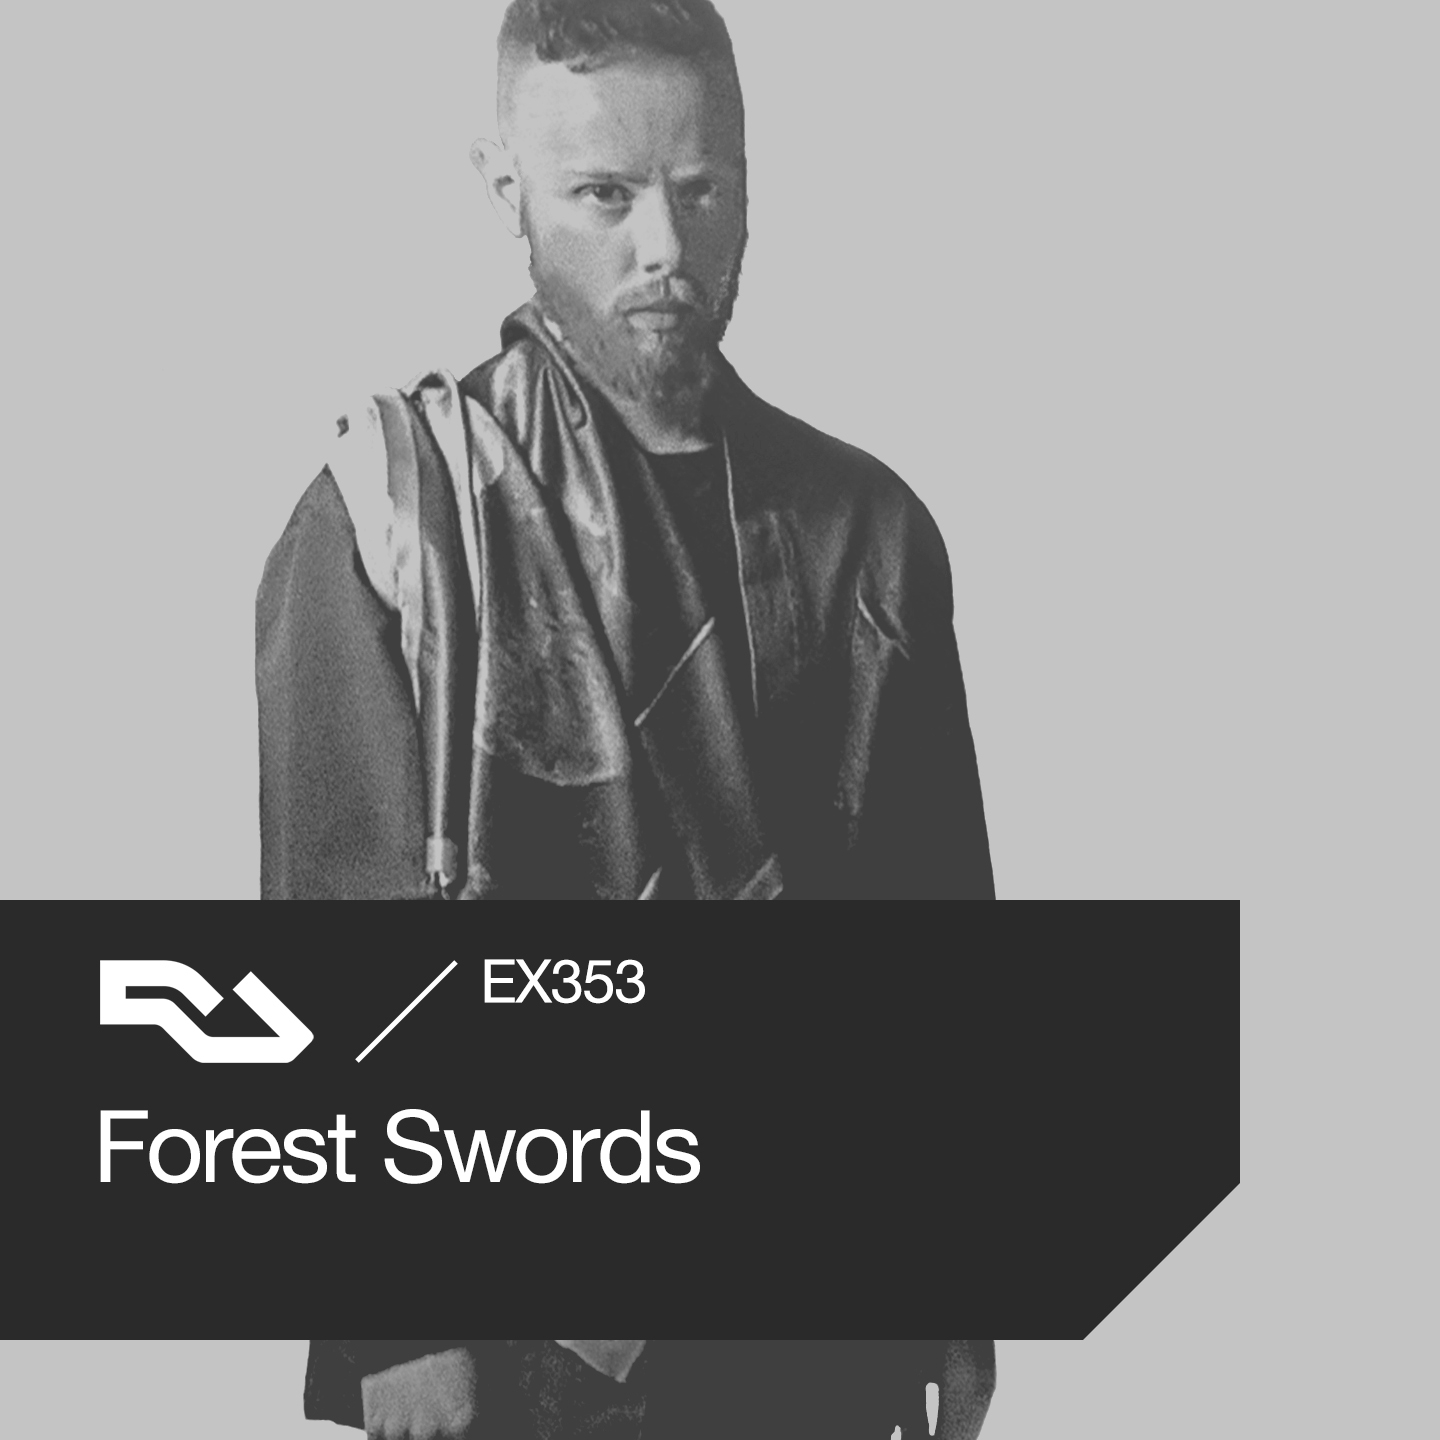 EX.353 Forest Swords